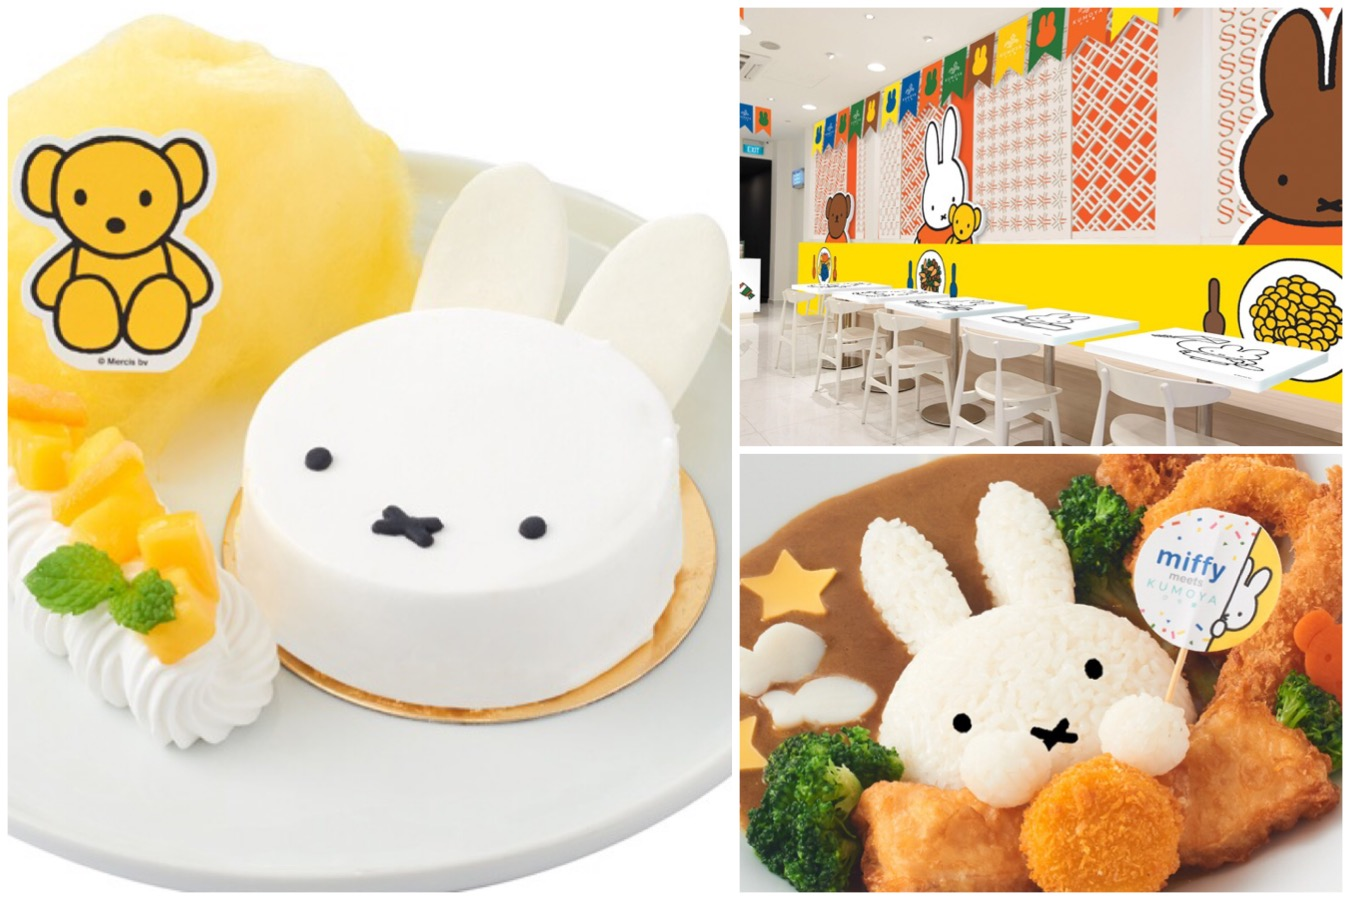 Miffy Café - Famous Rabbit Hopping To Singapore From October, At Halal Café Kumoya. So CUTE!